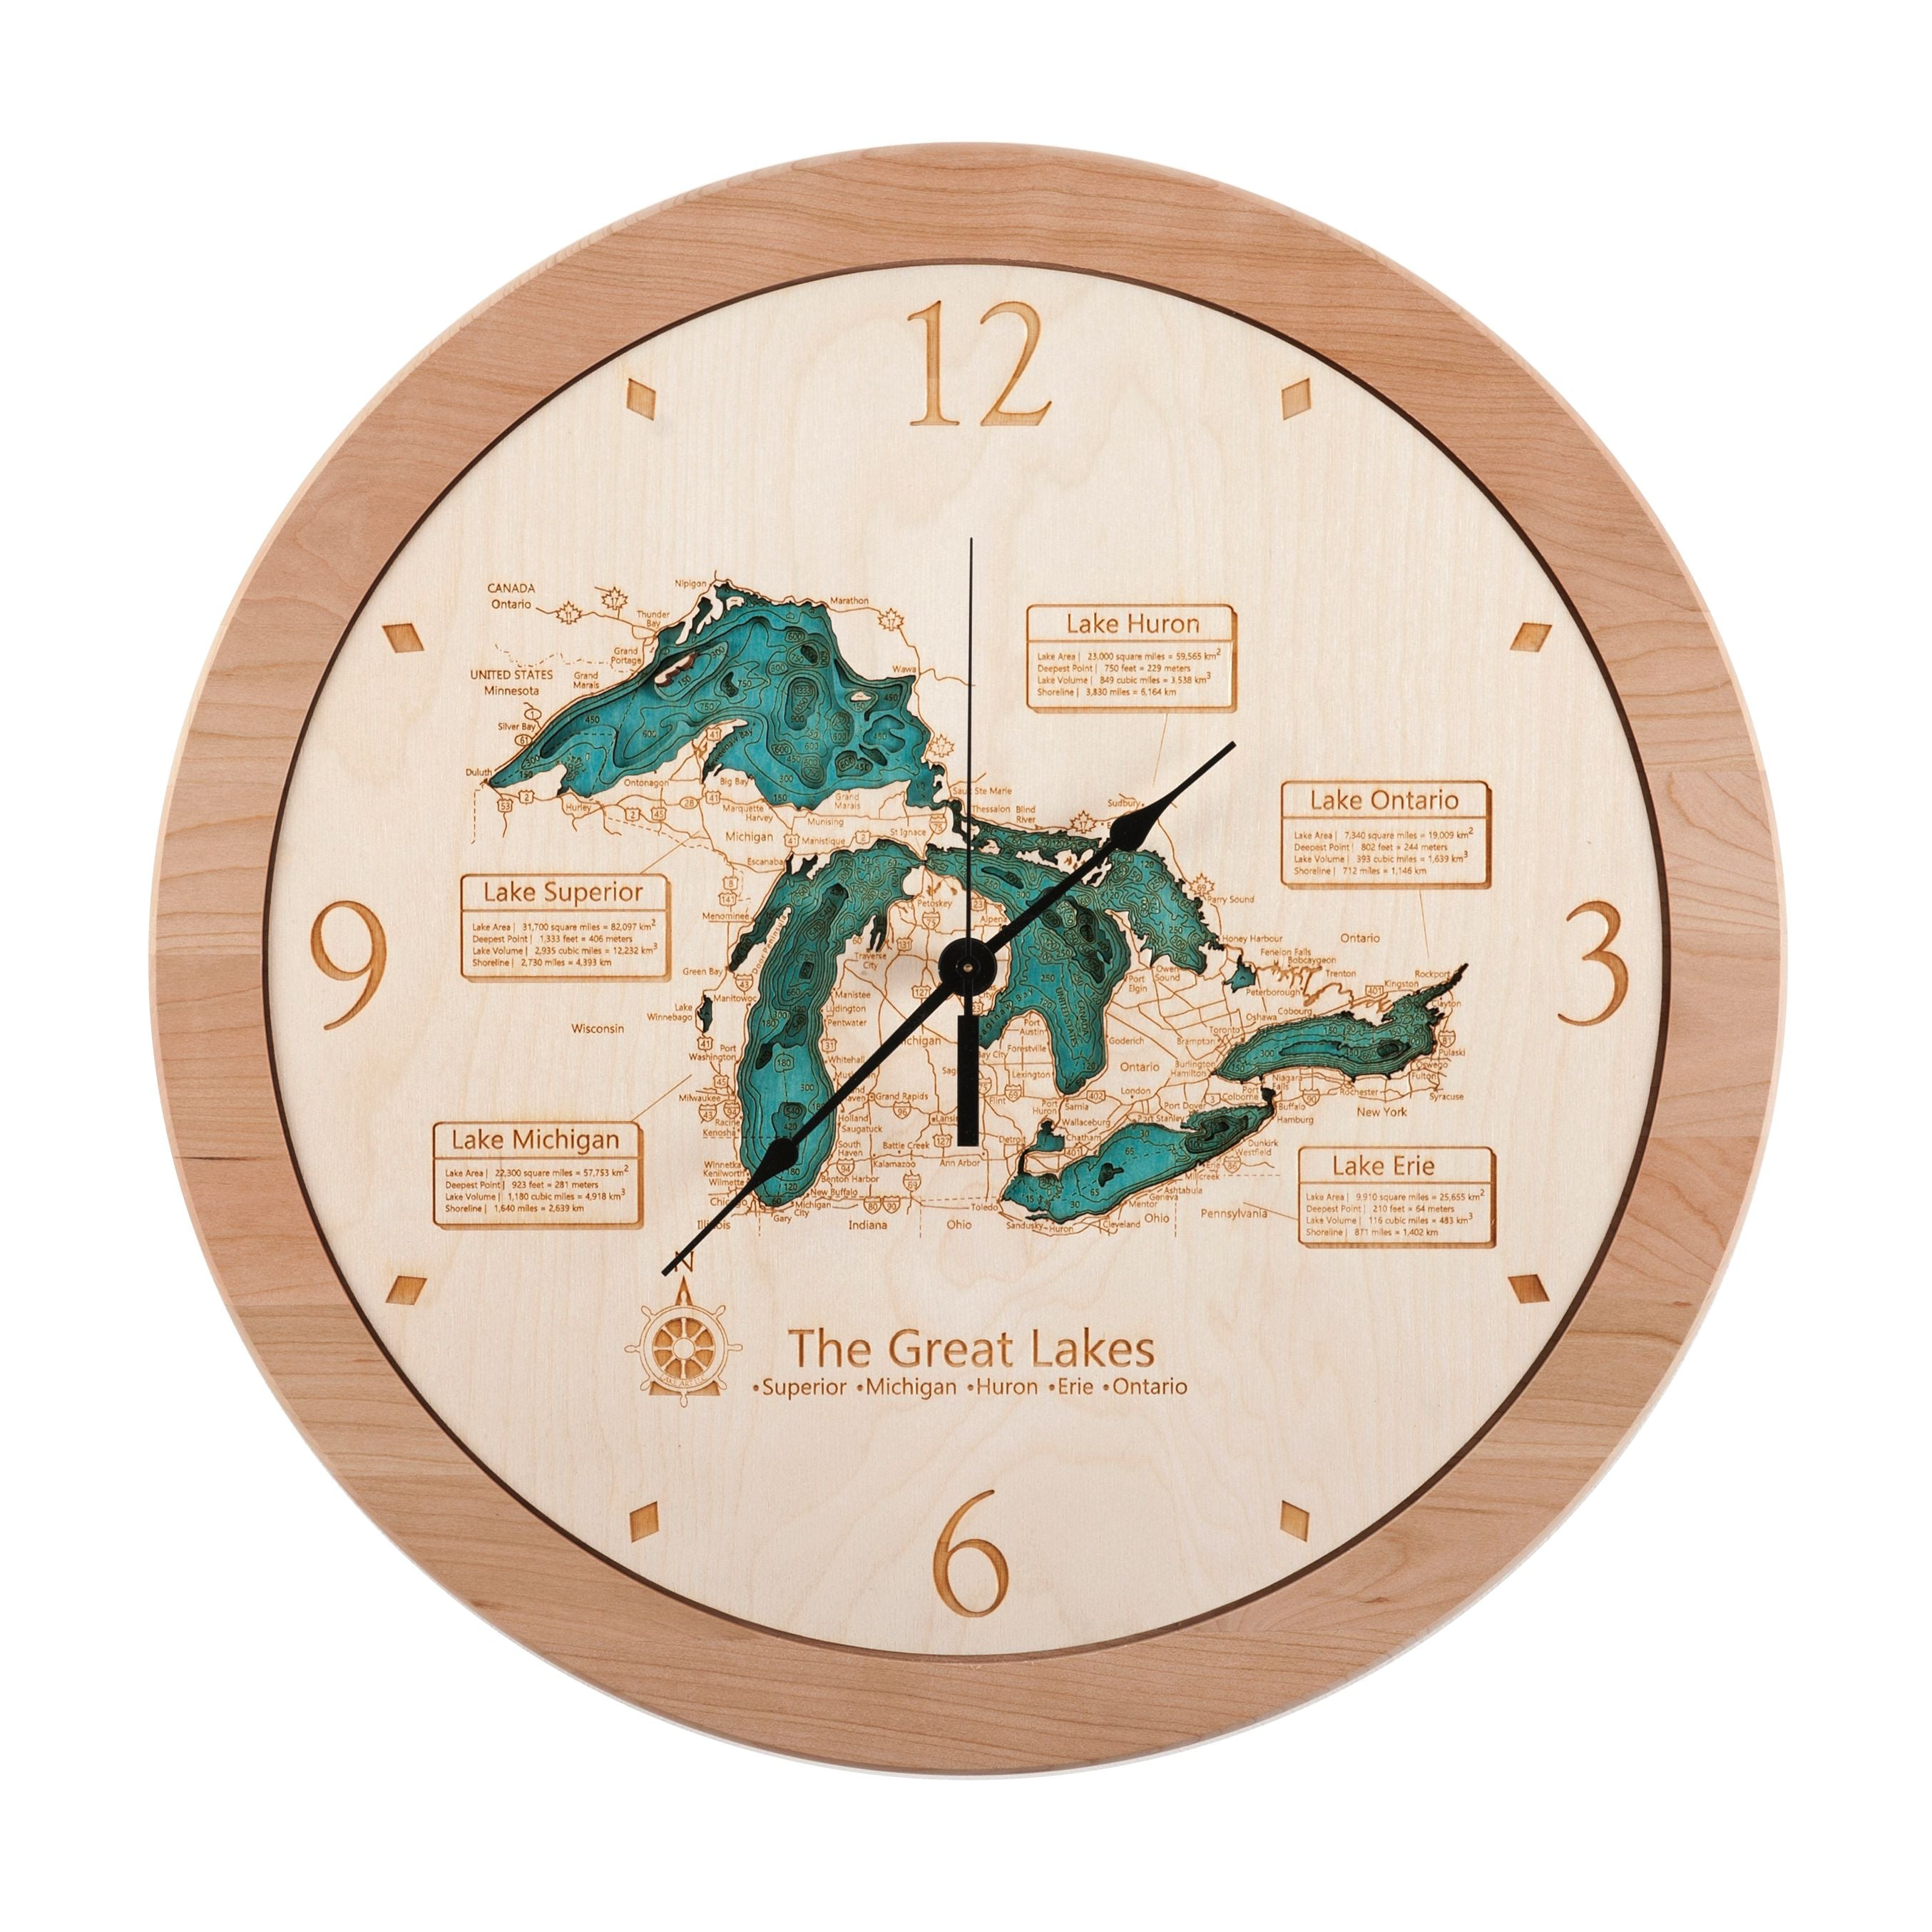 17.5 Great Lakes Clock